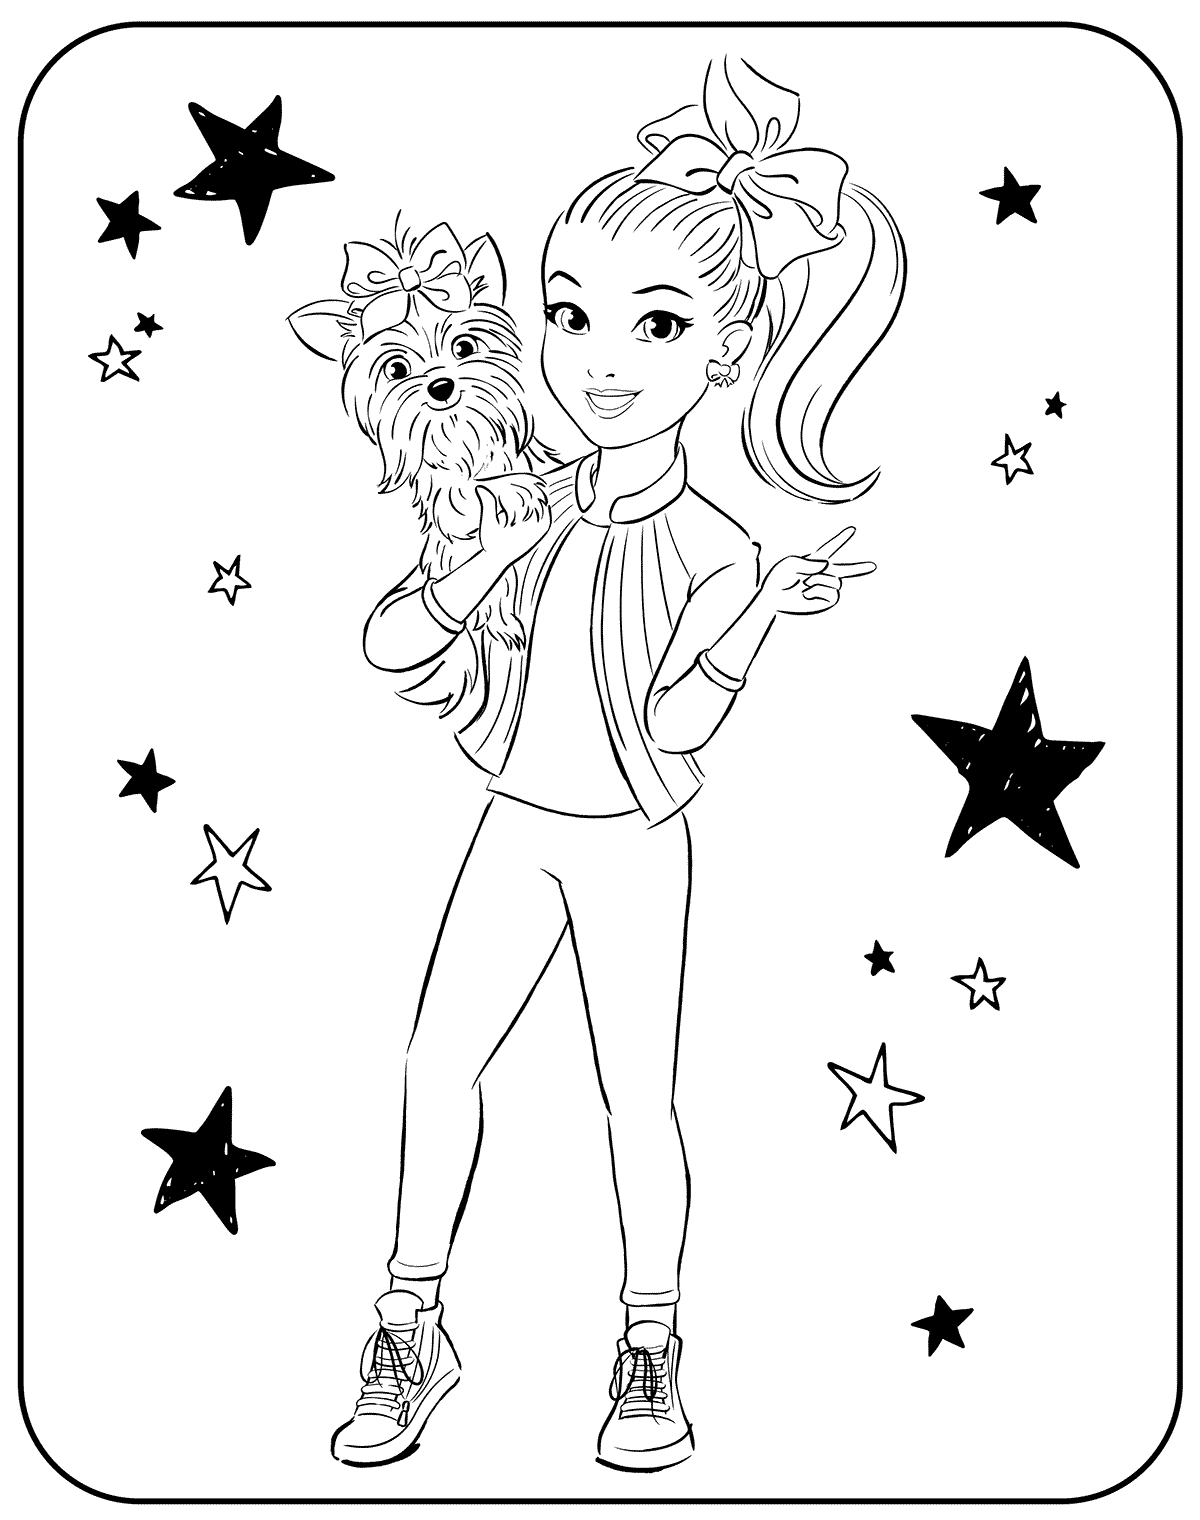 Pin By Mlabell On Coloring Pages Free And Printable Fall Coloring Pages Coloring Pages Cute Coloring Pages